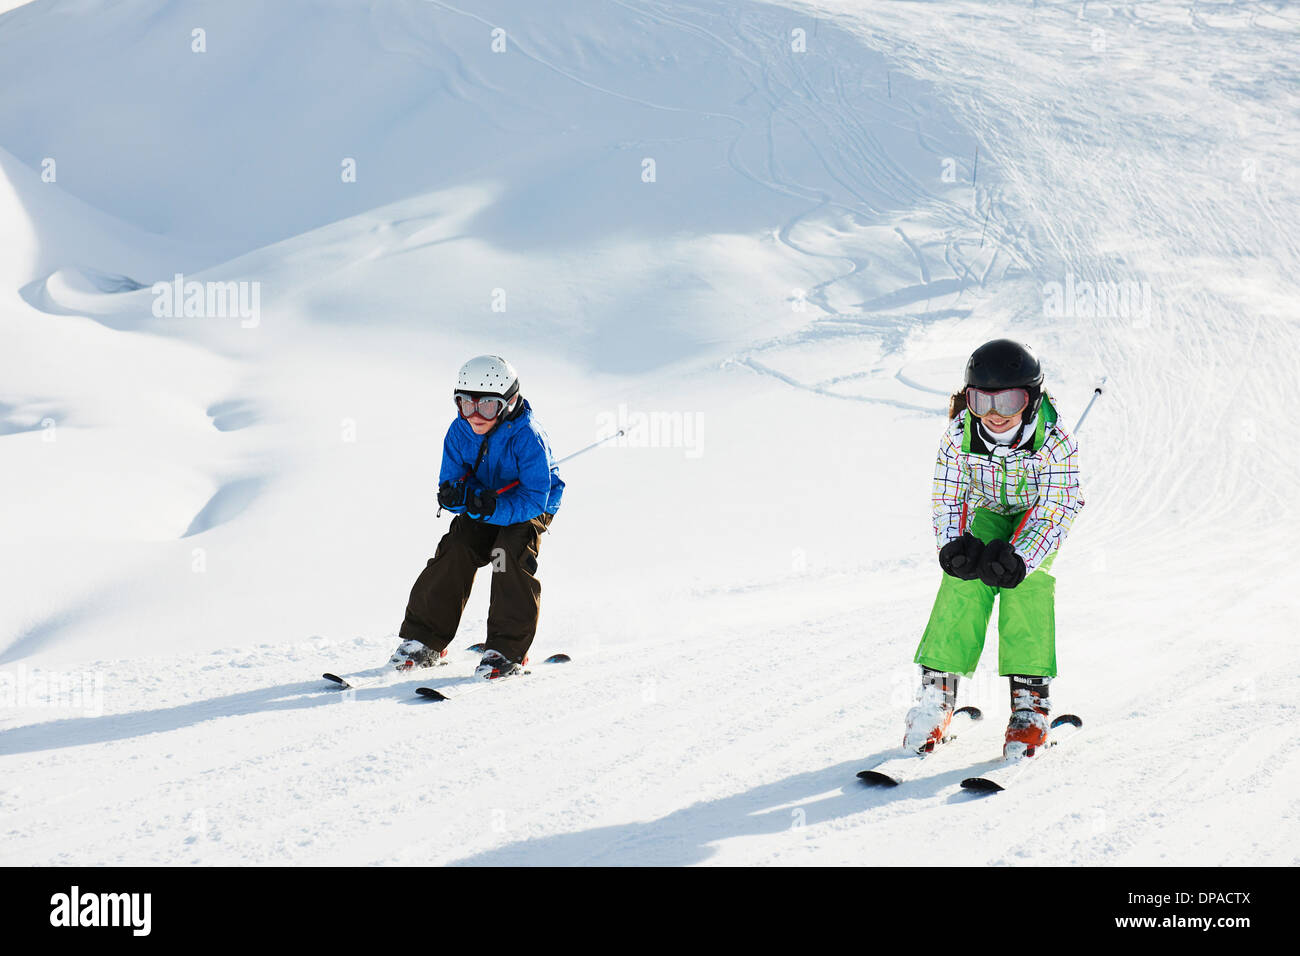 Brother and sister skiing, Les Arcs, Haute-Savoie, France Stock Photo